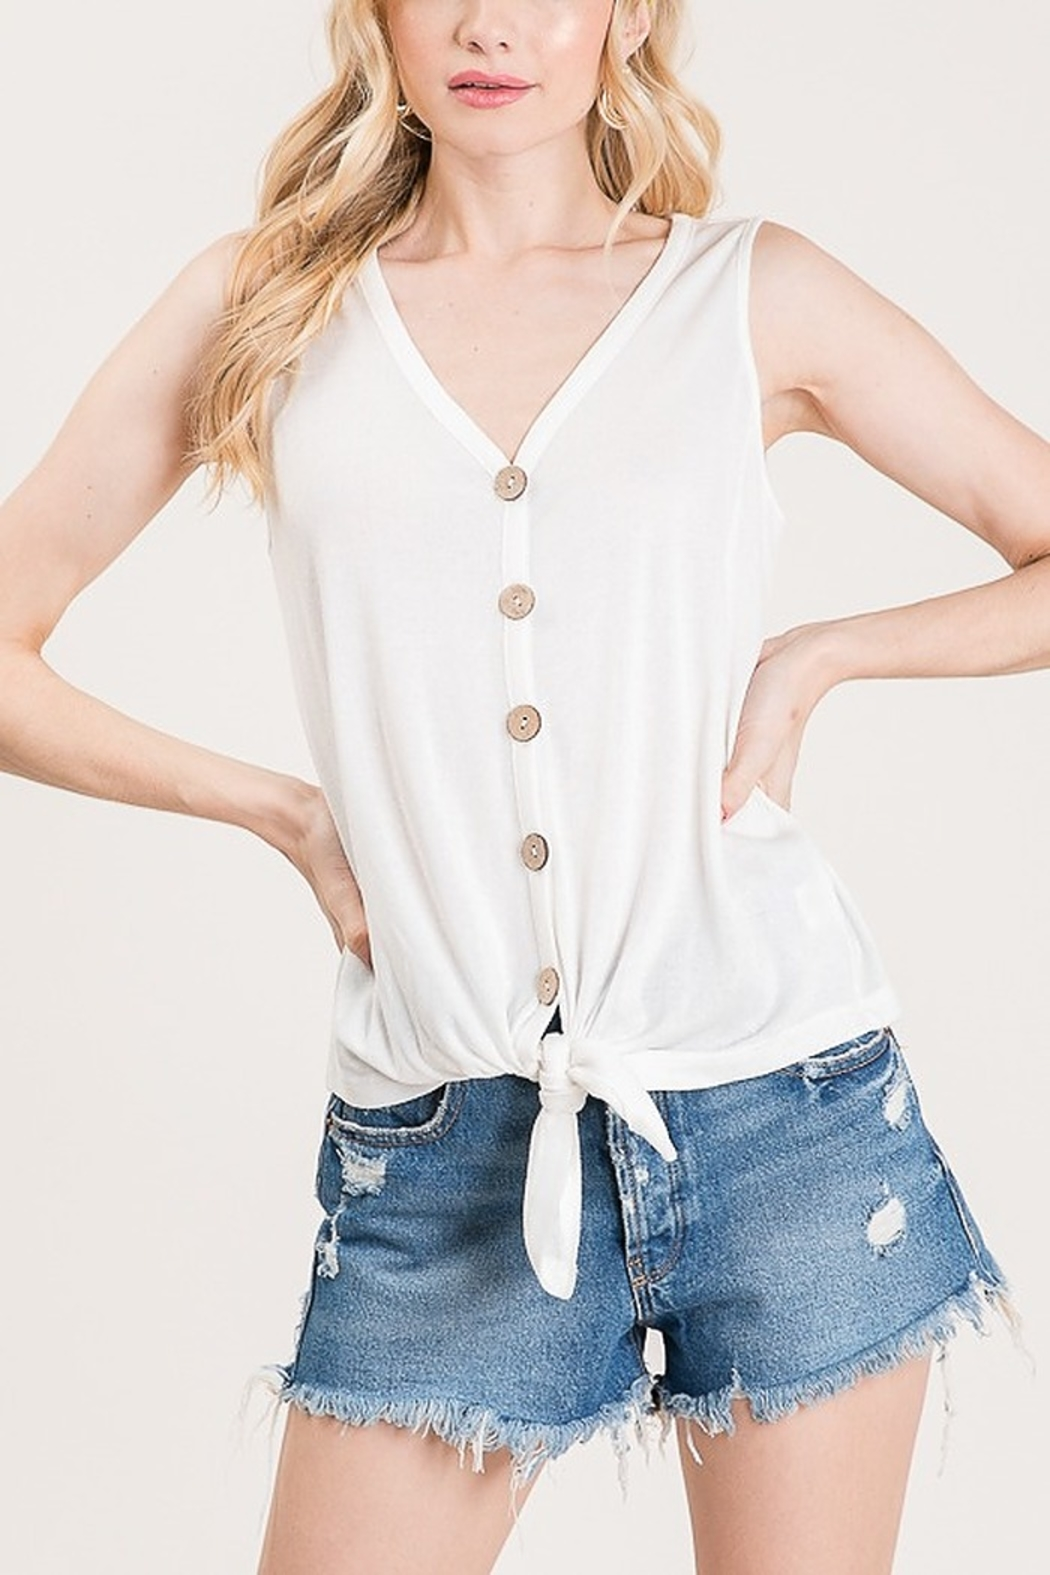 Lyn -Maree's Knot & Button Front Tank - Main Image